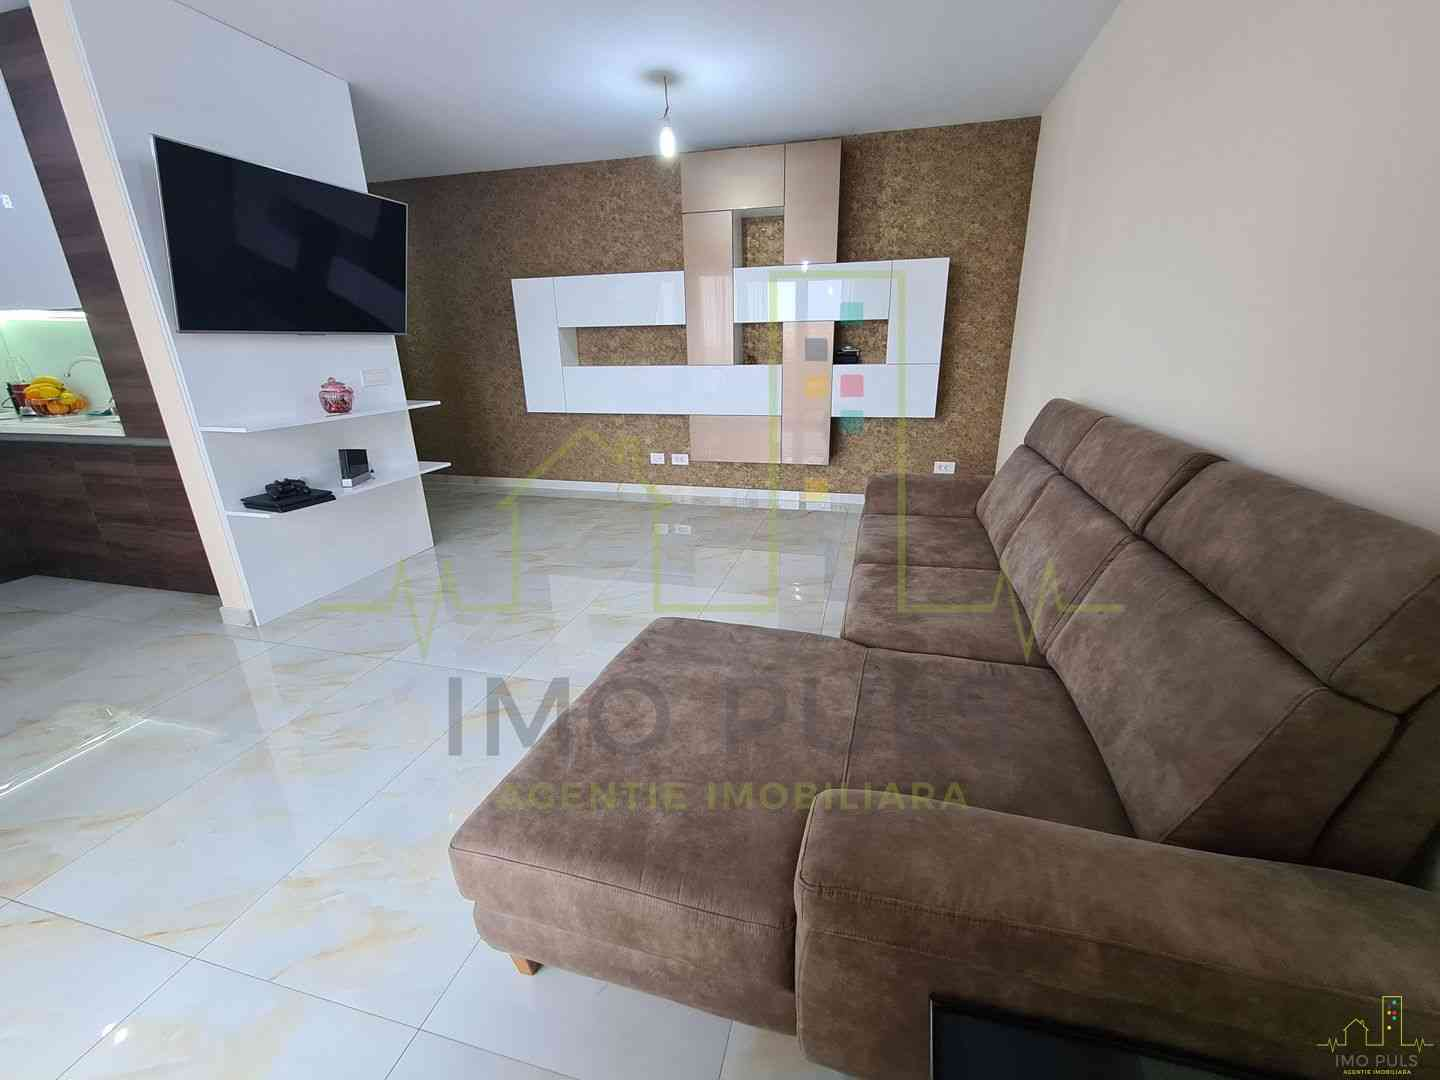 Apartament nou in oras. Mobilat-...